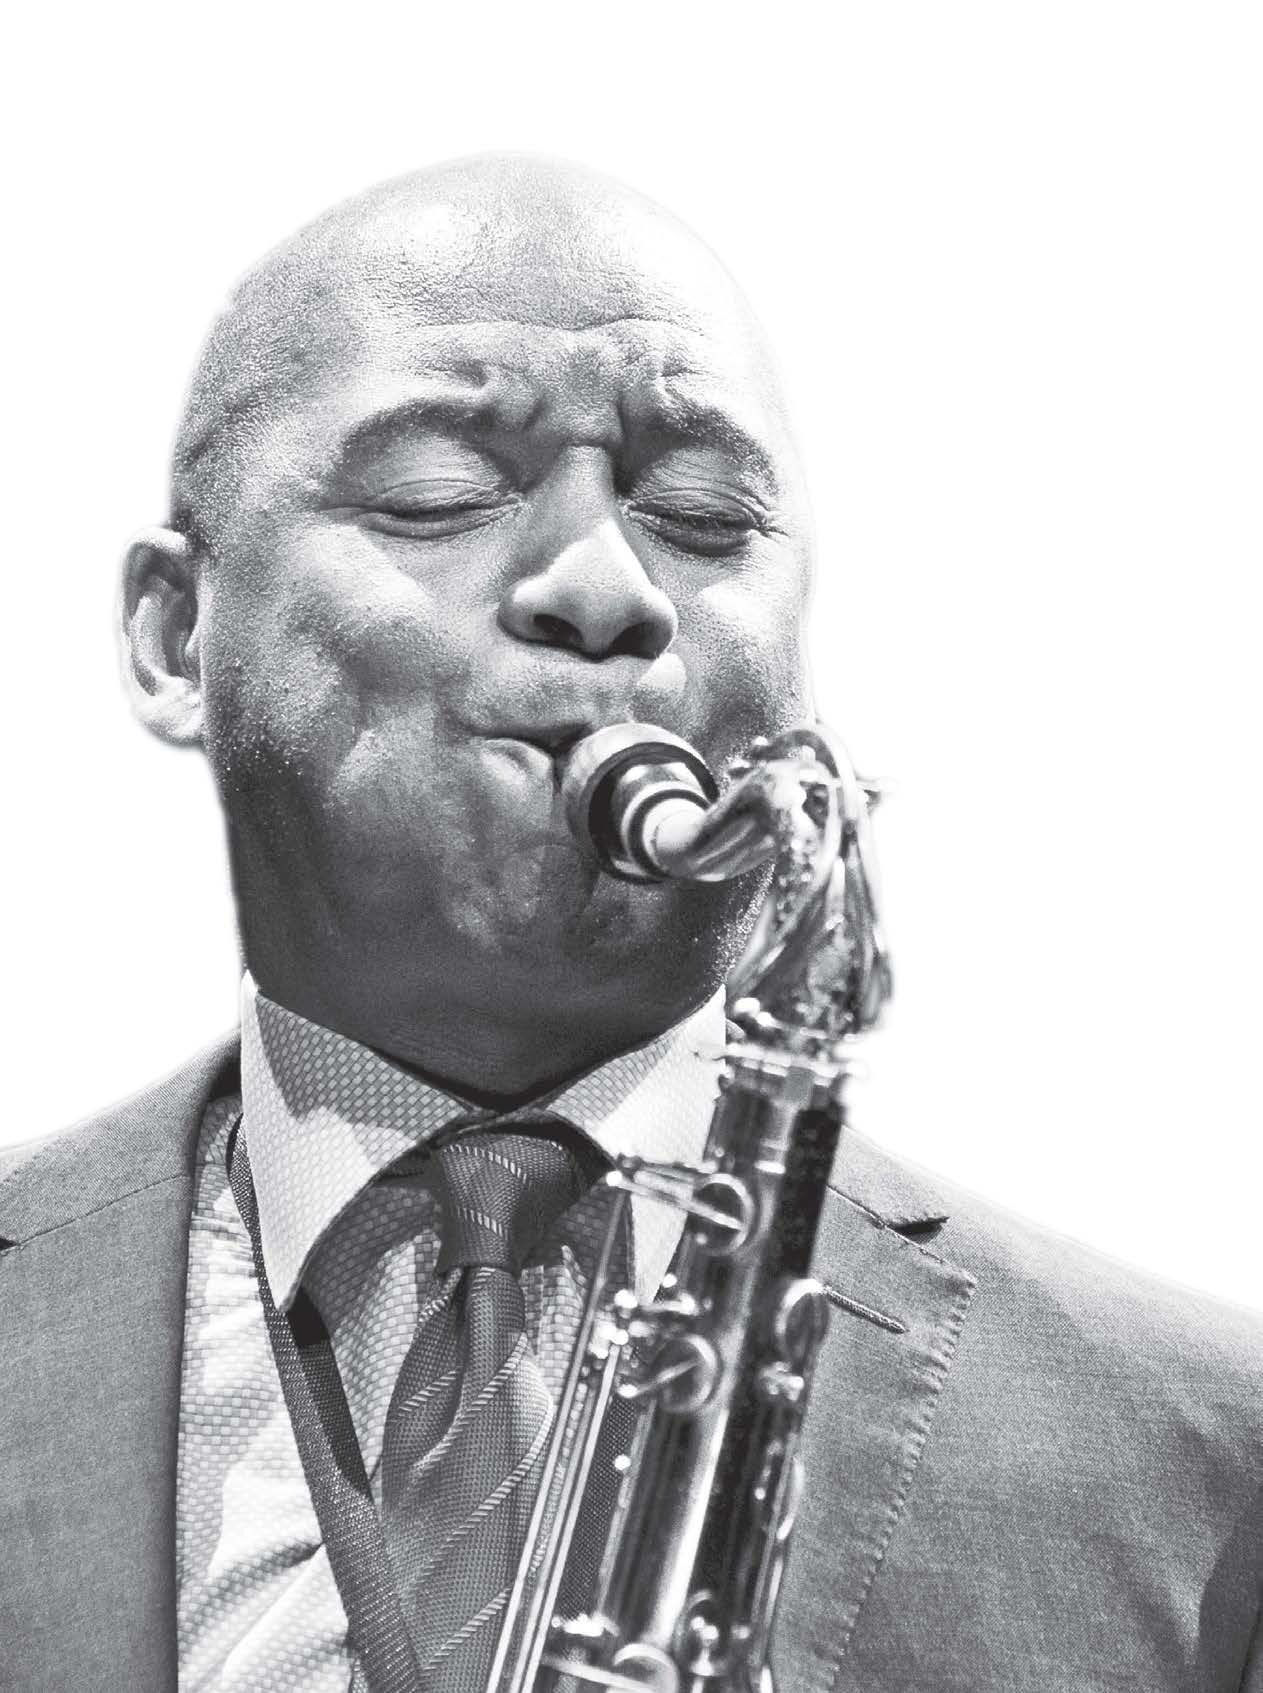 Intervista a Branford Marsalis: ecco Four MFs Playin' Tune